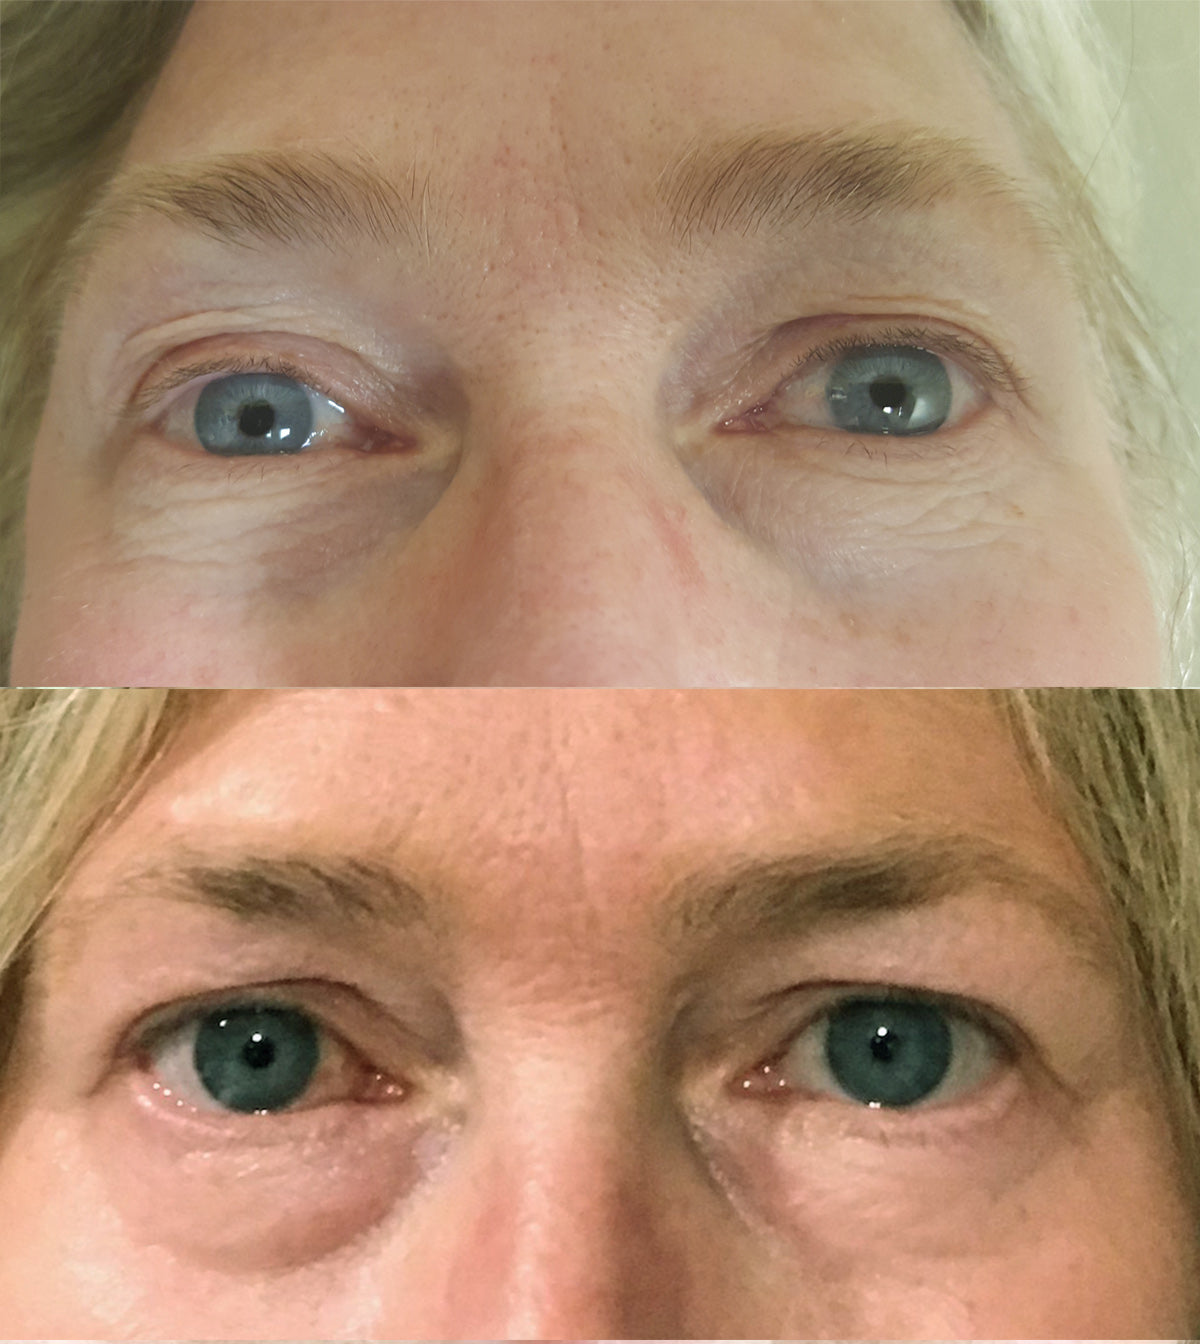 Plasma Pen No Surgery Eyelift Beautiful Laser Center Friendswood TX 409-454-9502